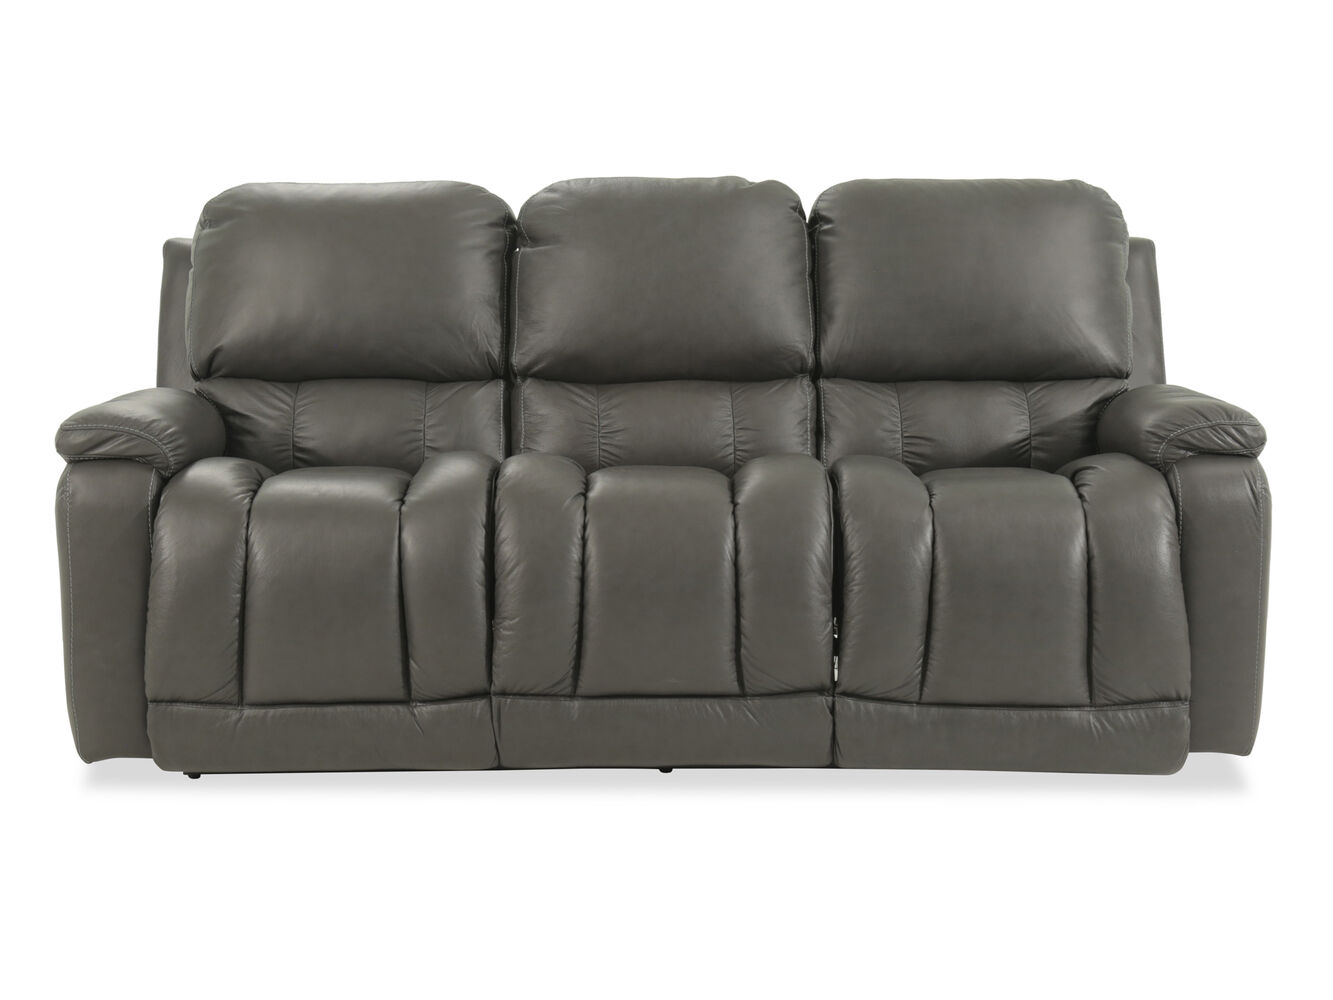 casual 85 power reclining sofa in gray mathis brothers furniture. Black Bedroom Furniture Sets. Home Design Ideas